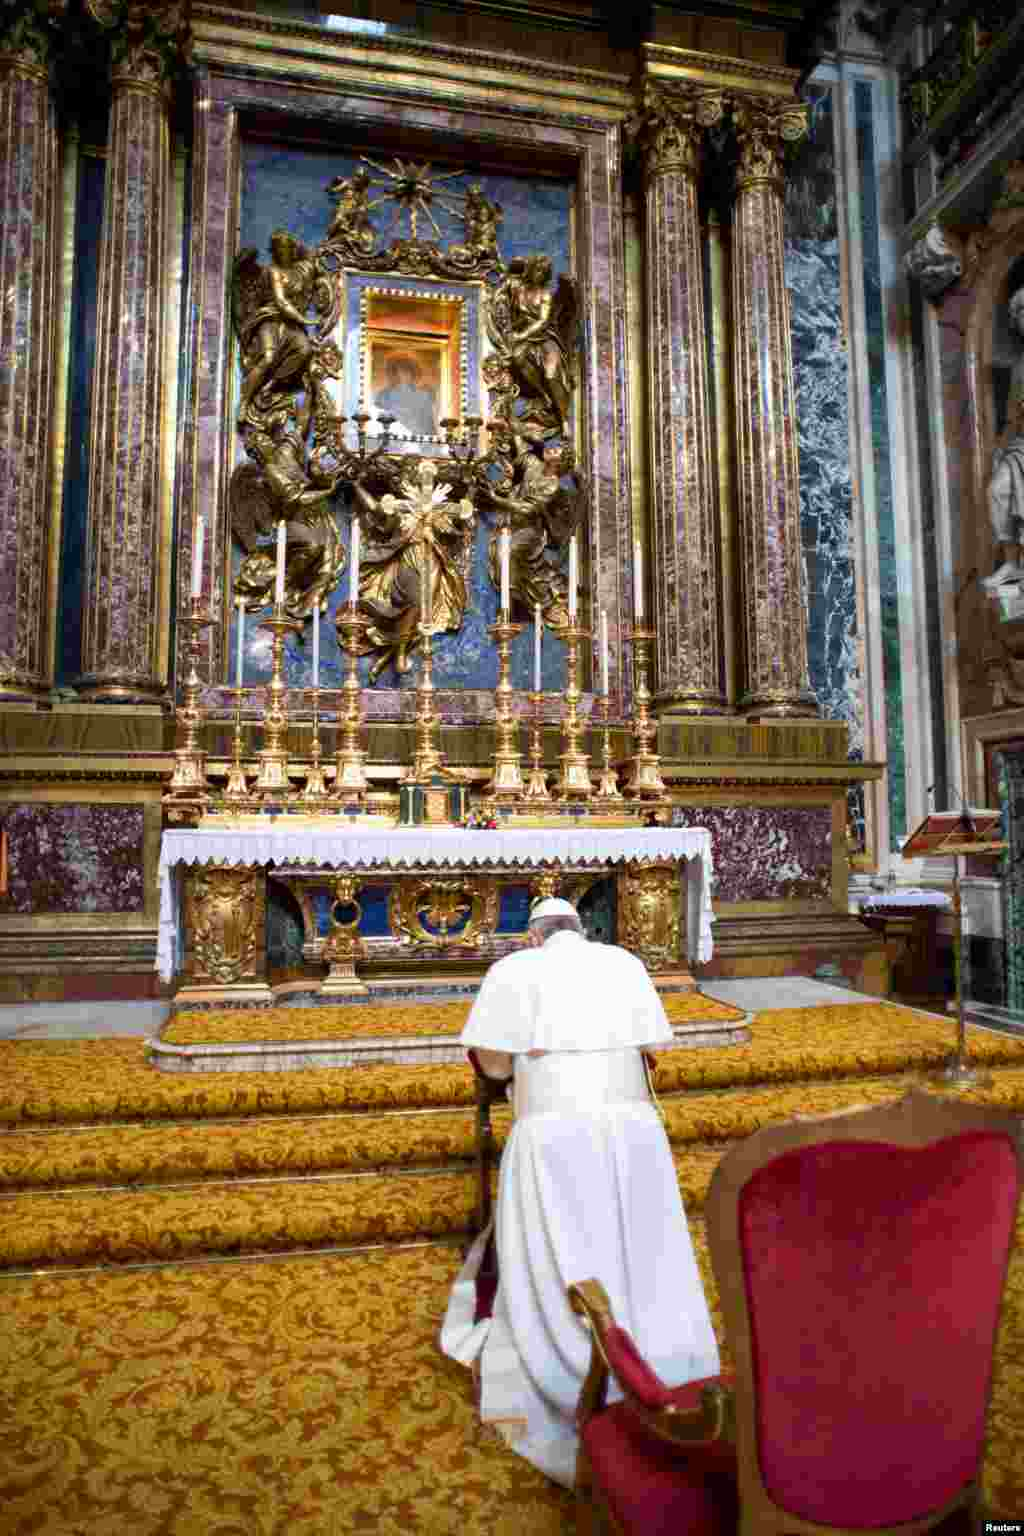 Newly elected Pope Francis prays before an icon of Mary during a private visit to the Basilica of Santa Maria Maggiore, in a photo released by Osservatore Romano in Rome, March 14, 2013.